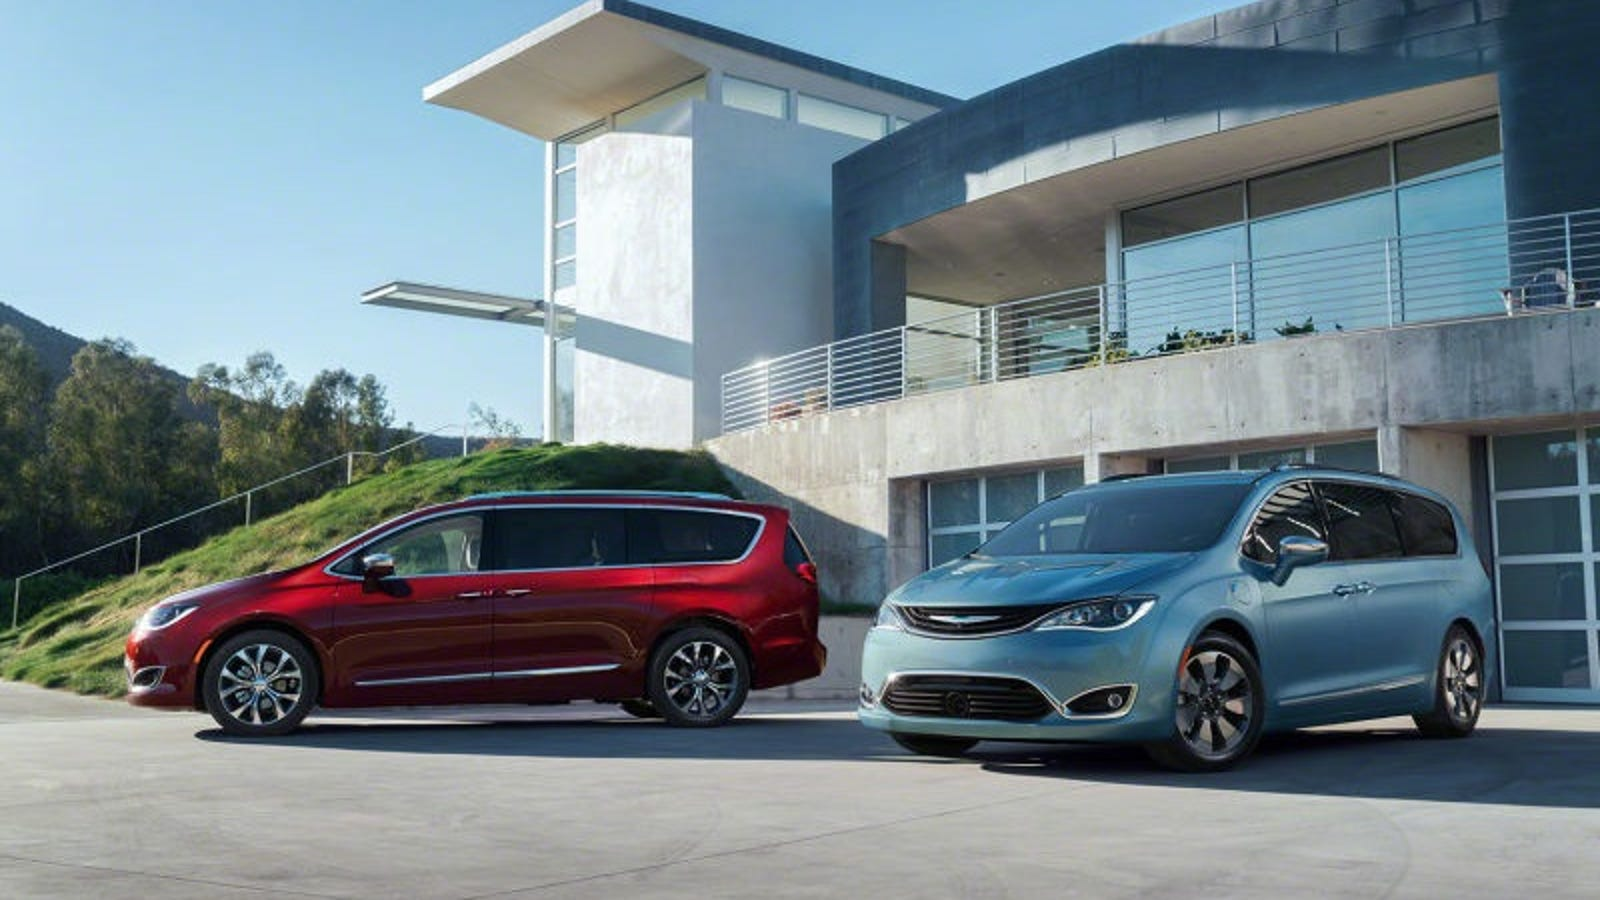 2017 chrysler pacifica and pacifica hybrid this is it. Black Bedroom Furniture Sets. Home Design Ideas